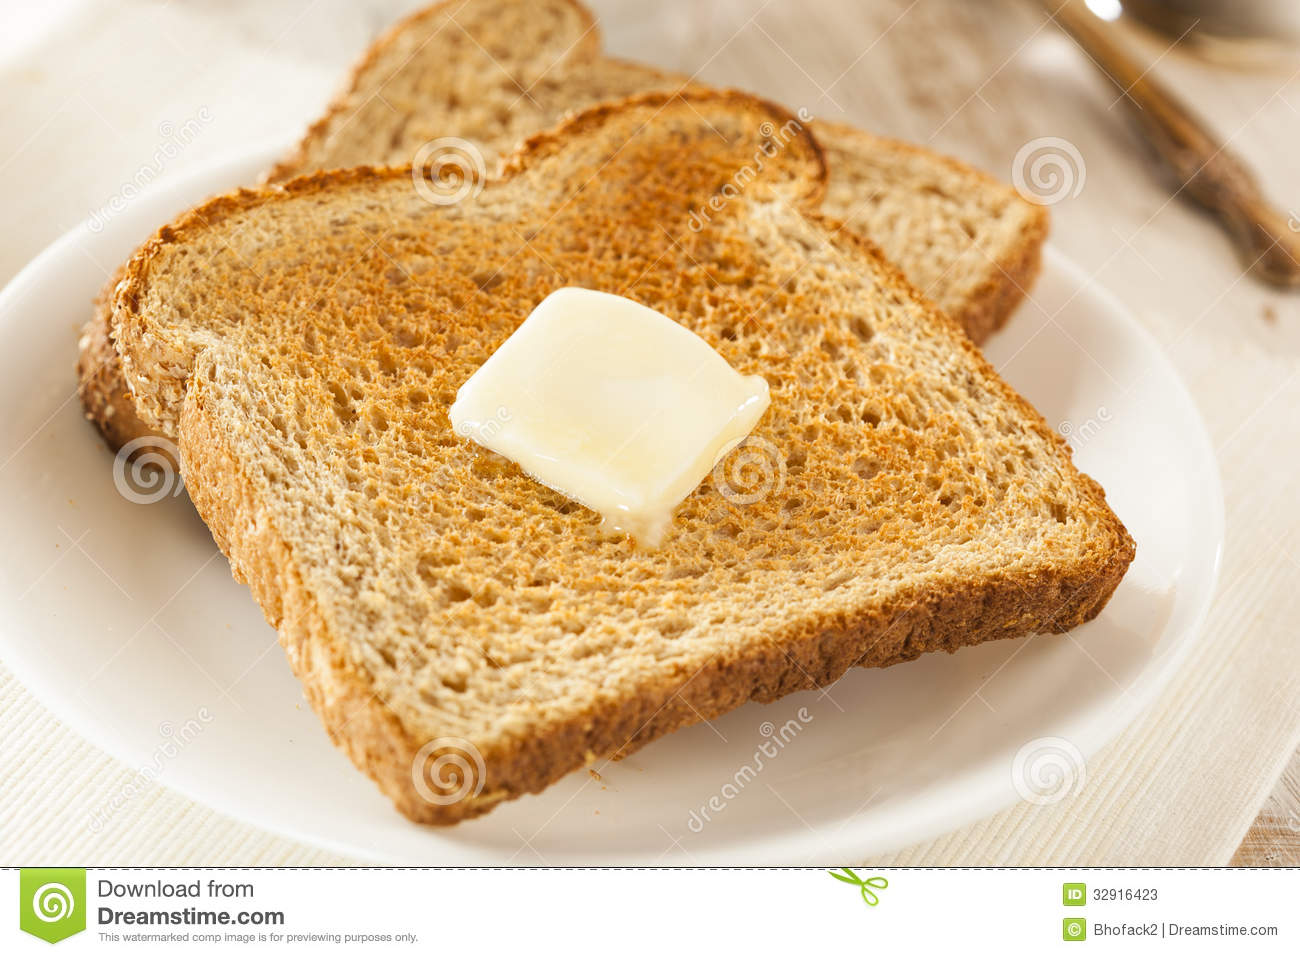 Whole Wheat Buttered Toast Stock Photos - Image: 32916423